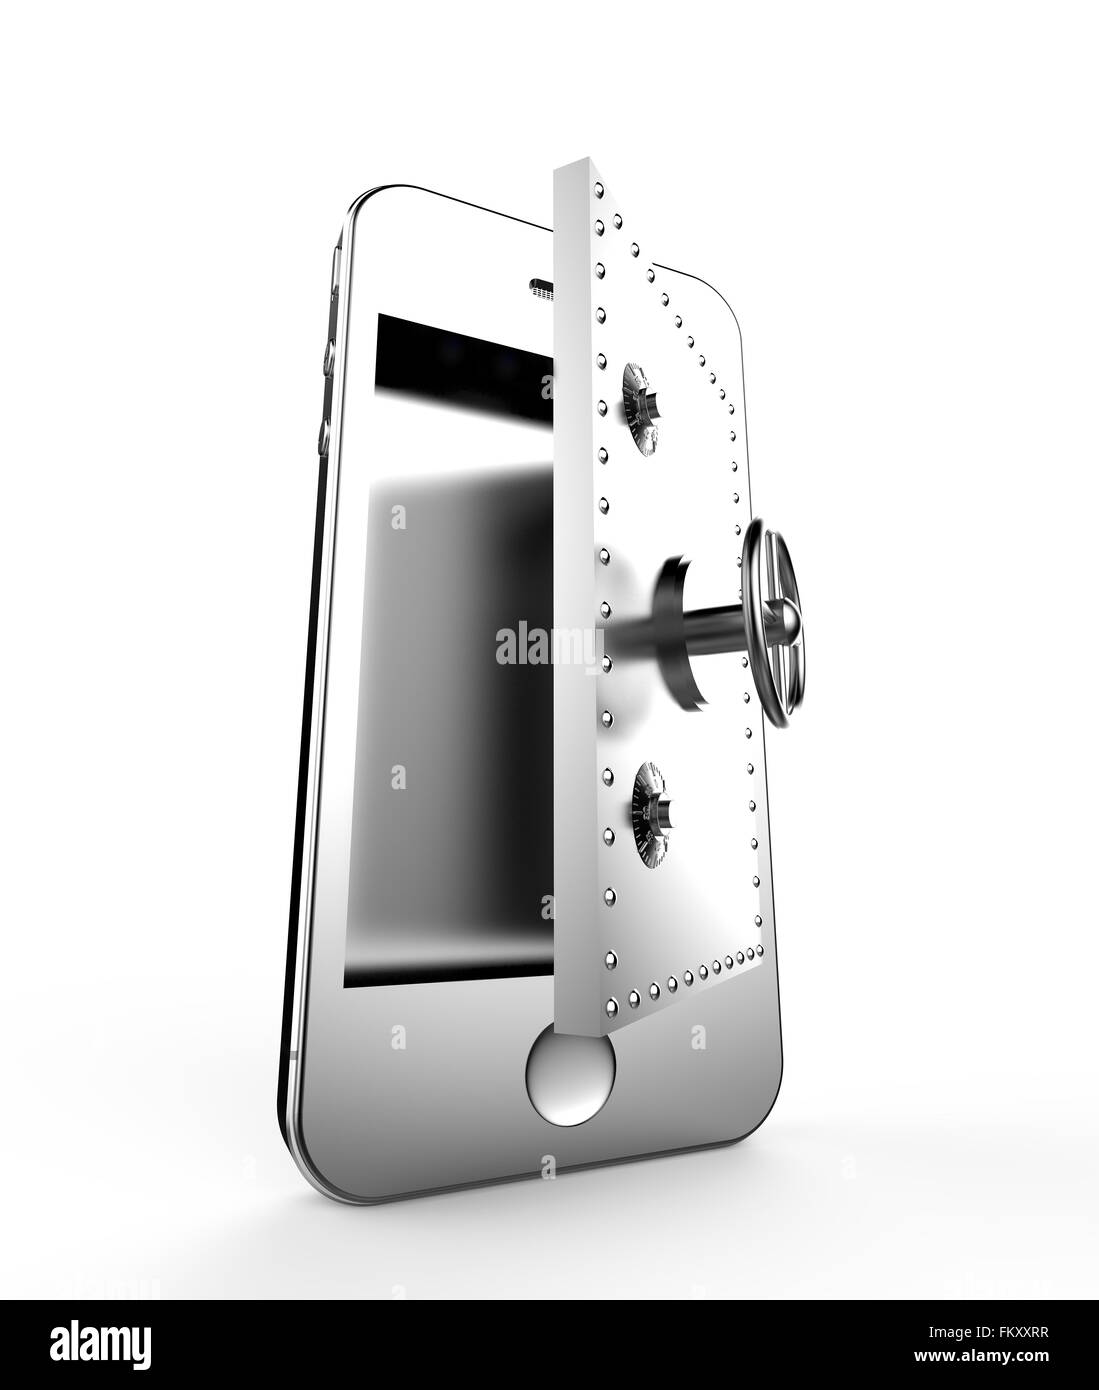 Open door of a safe in a smartphone: Security concept - Stock Image